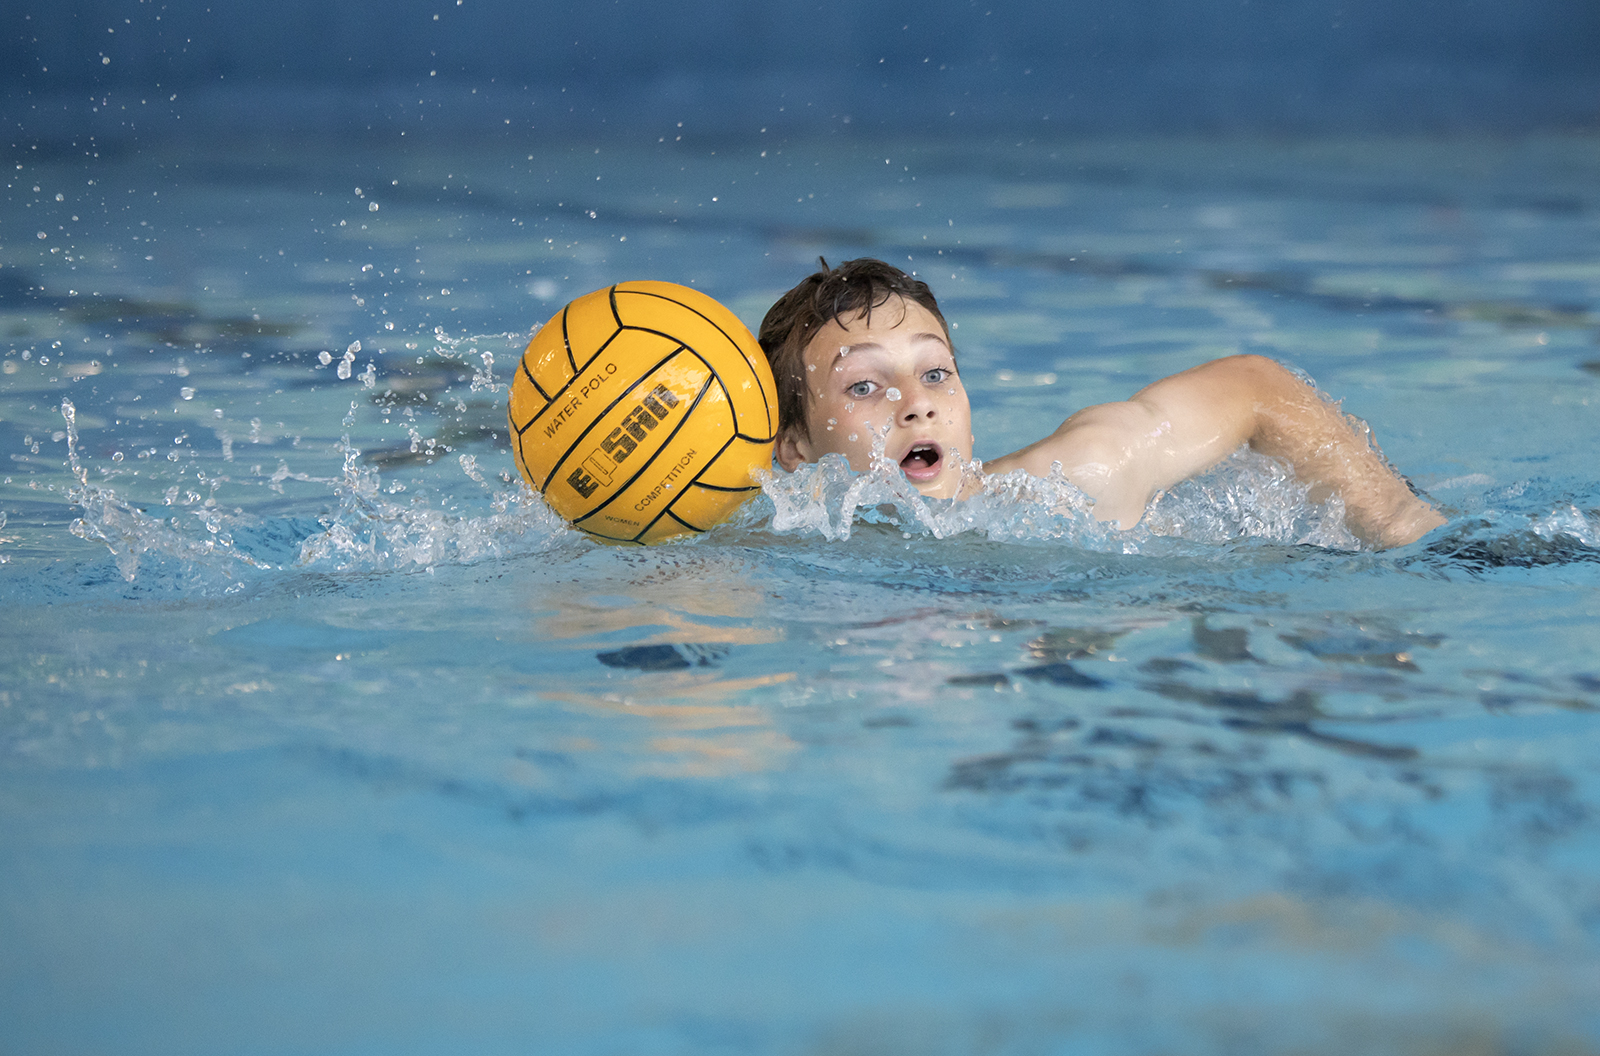 For Water Polo click here -